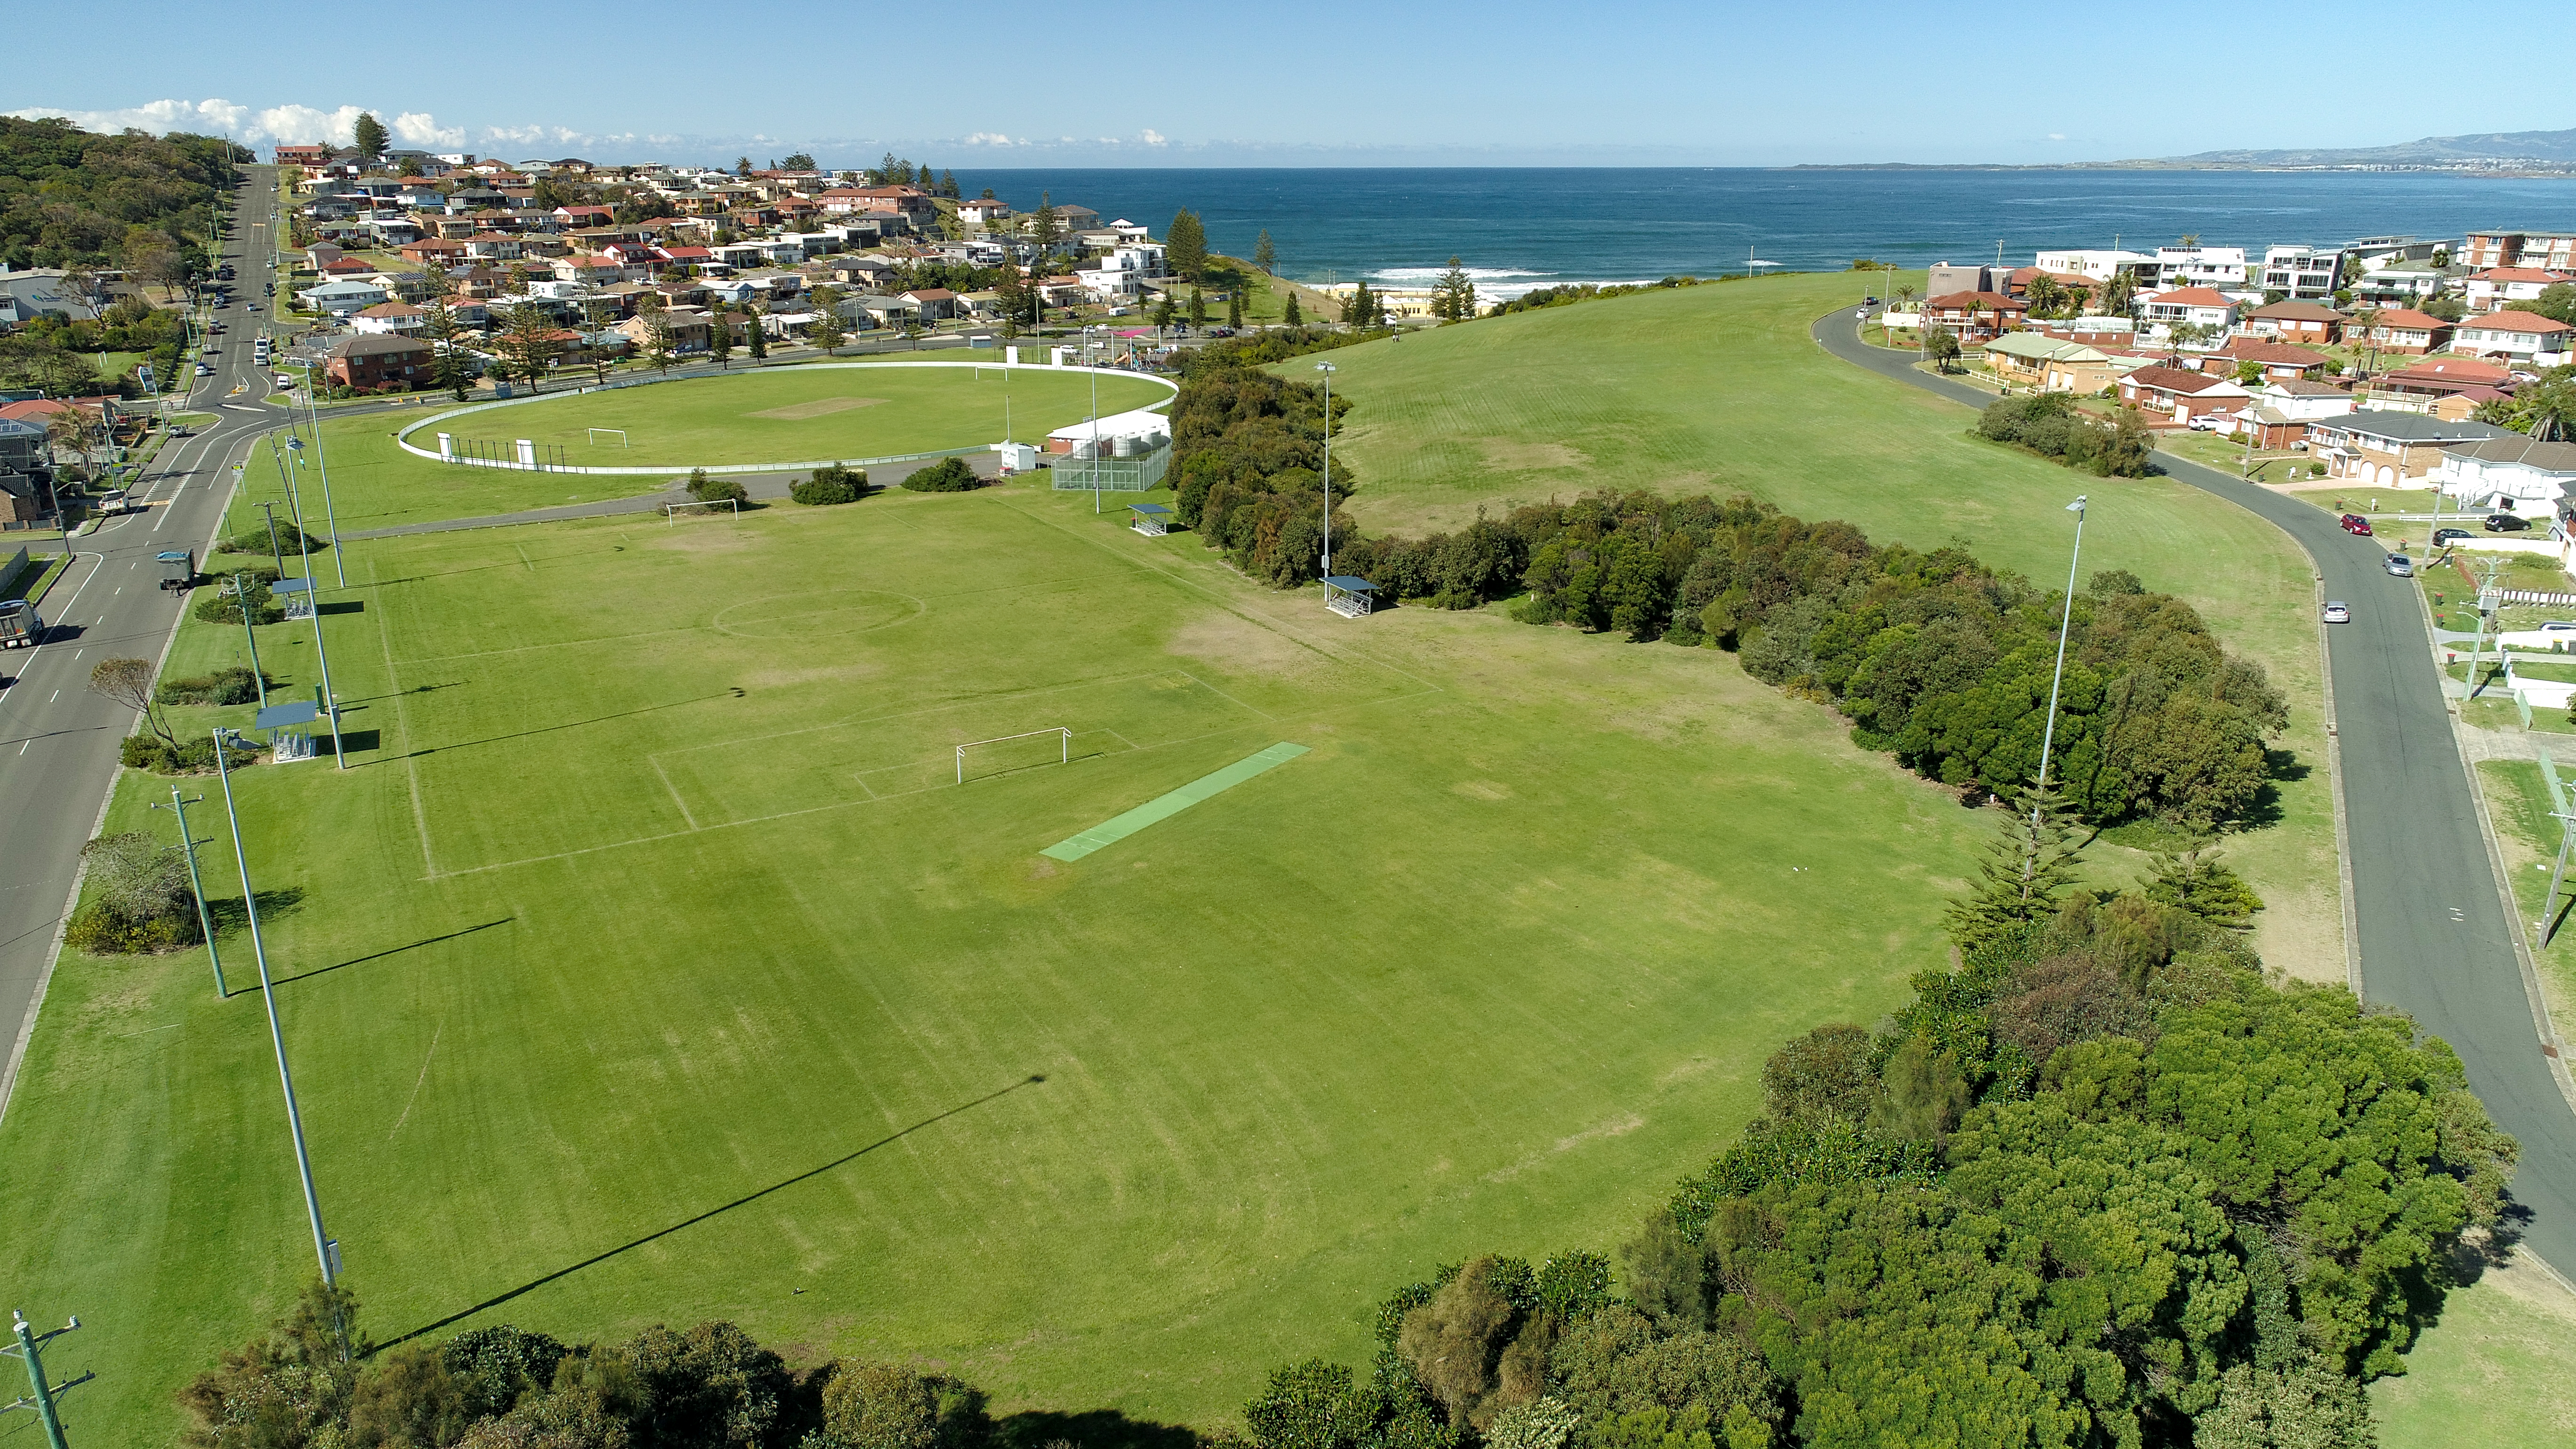 Image shows the King George V Oval in Port Kembla, looking out to the ocean.